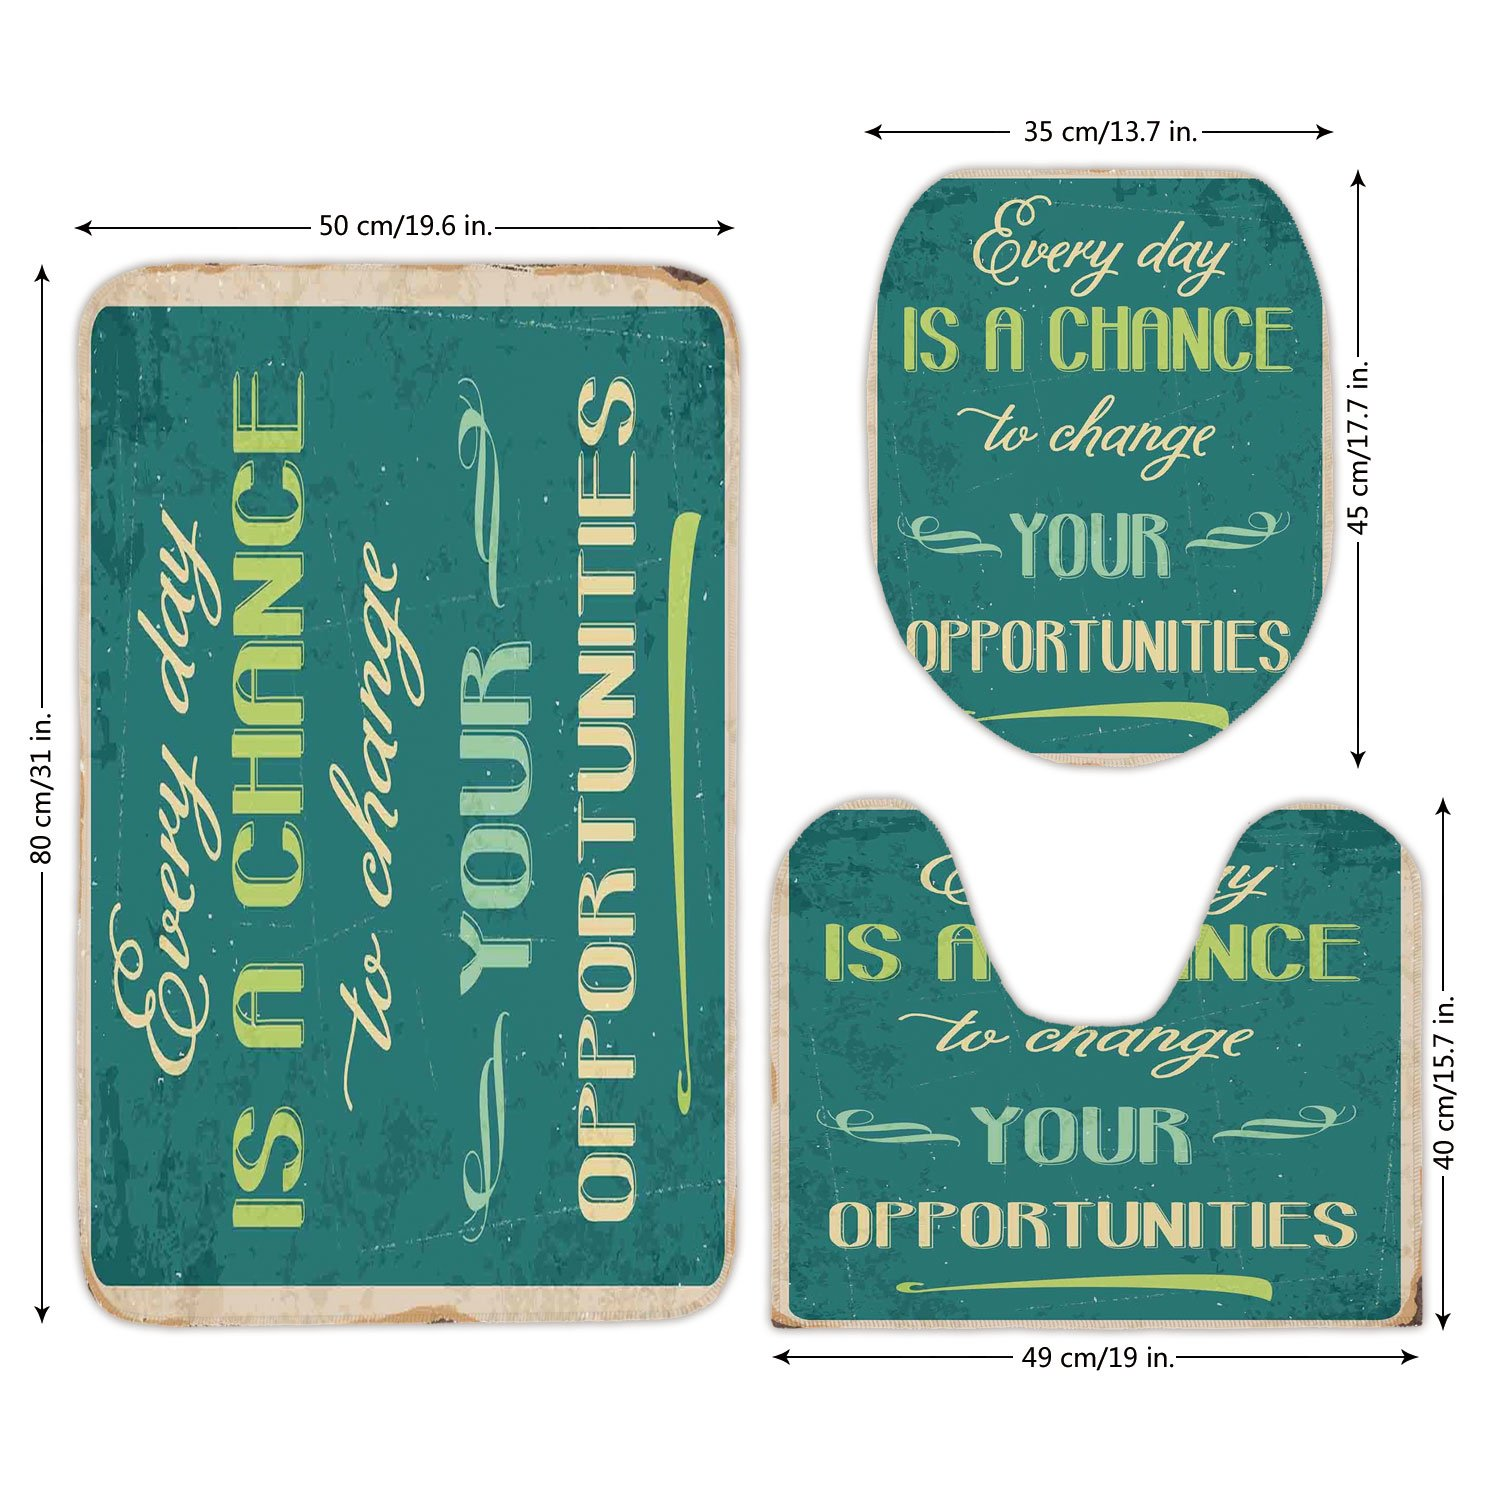 3 Piece Bathroom Mat Set,Lifestyle,Every Day is a Chance to Change Your Opportunities Quote Retro Poster Print,Jade Green Tan,Bath Mat,Bathroom Carpet Rug,Non-Slip by iPrint